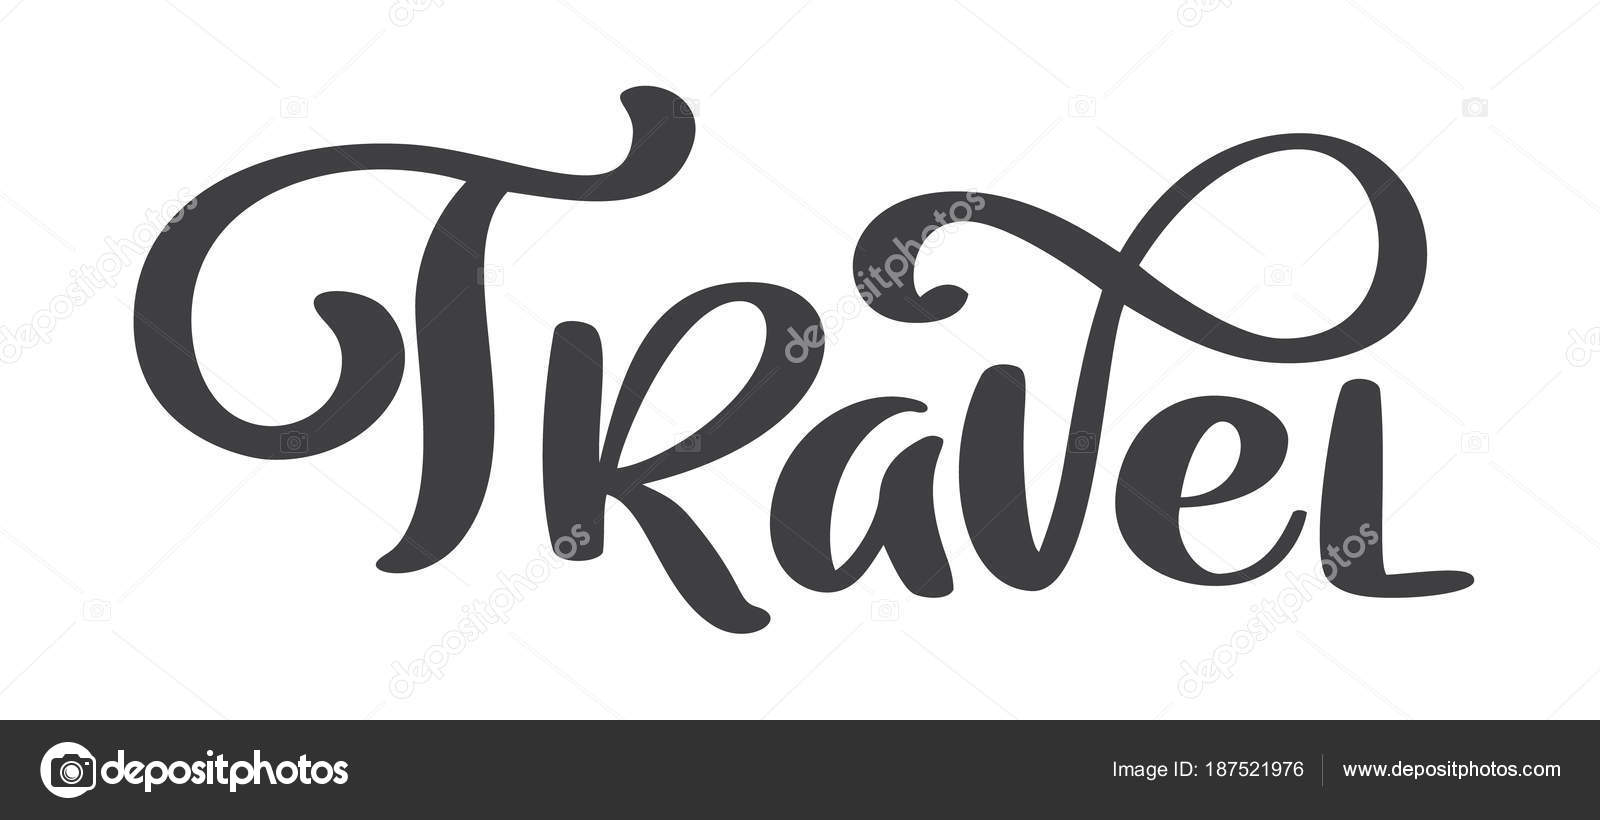 Travel Vector Text Lettering Design For Posters Flyers T Shirts Cards Invitations Stickers Banners Hand Painted Brush Pen Modern Calligraphy Isolated